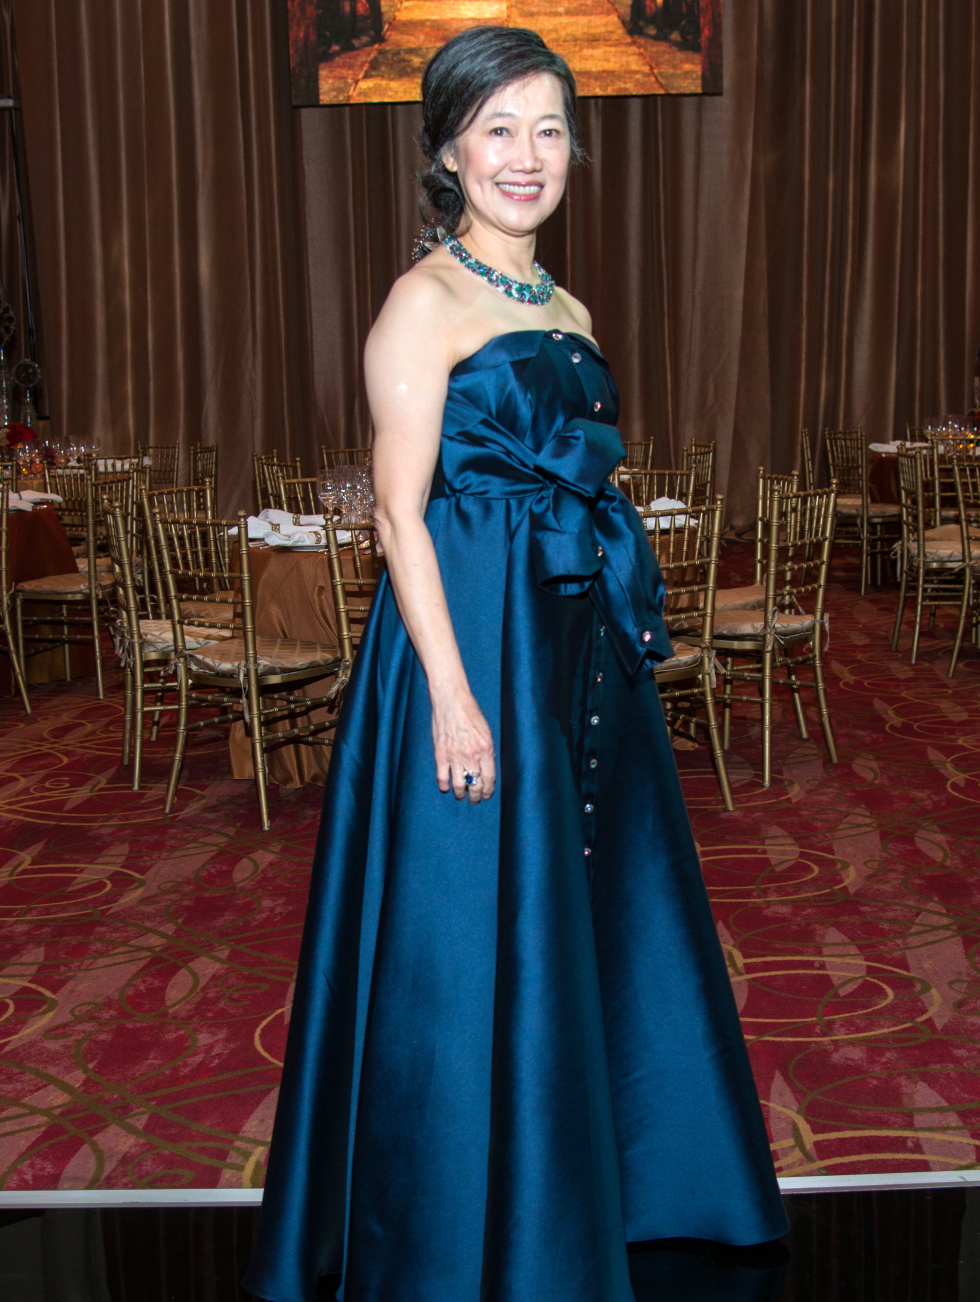 Houston, Ballet Ball gowns, Feb 2017, Anne Chao in Alexis Mabille